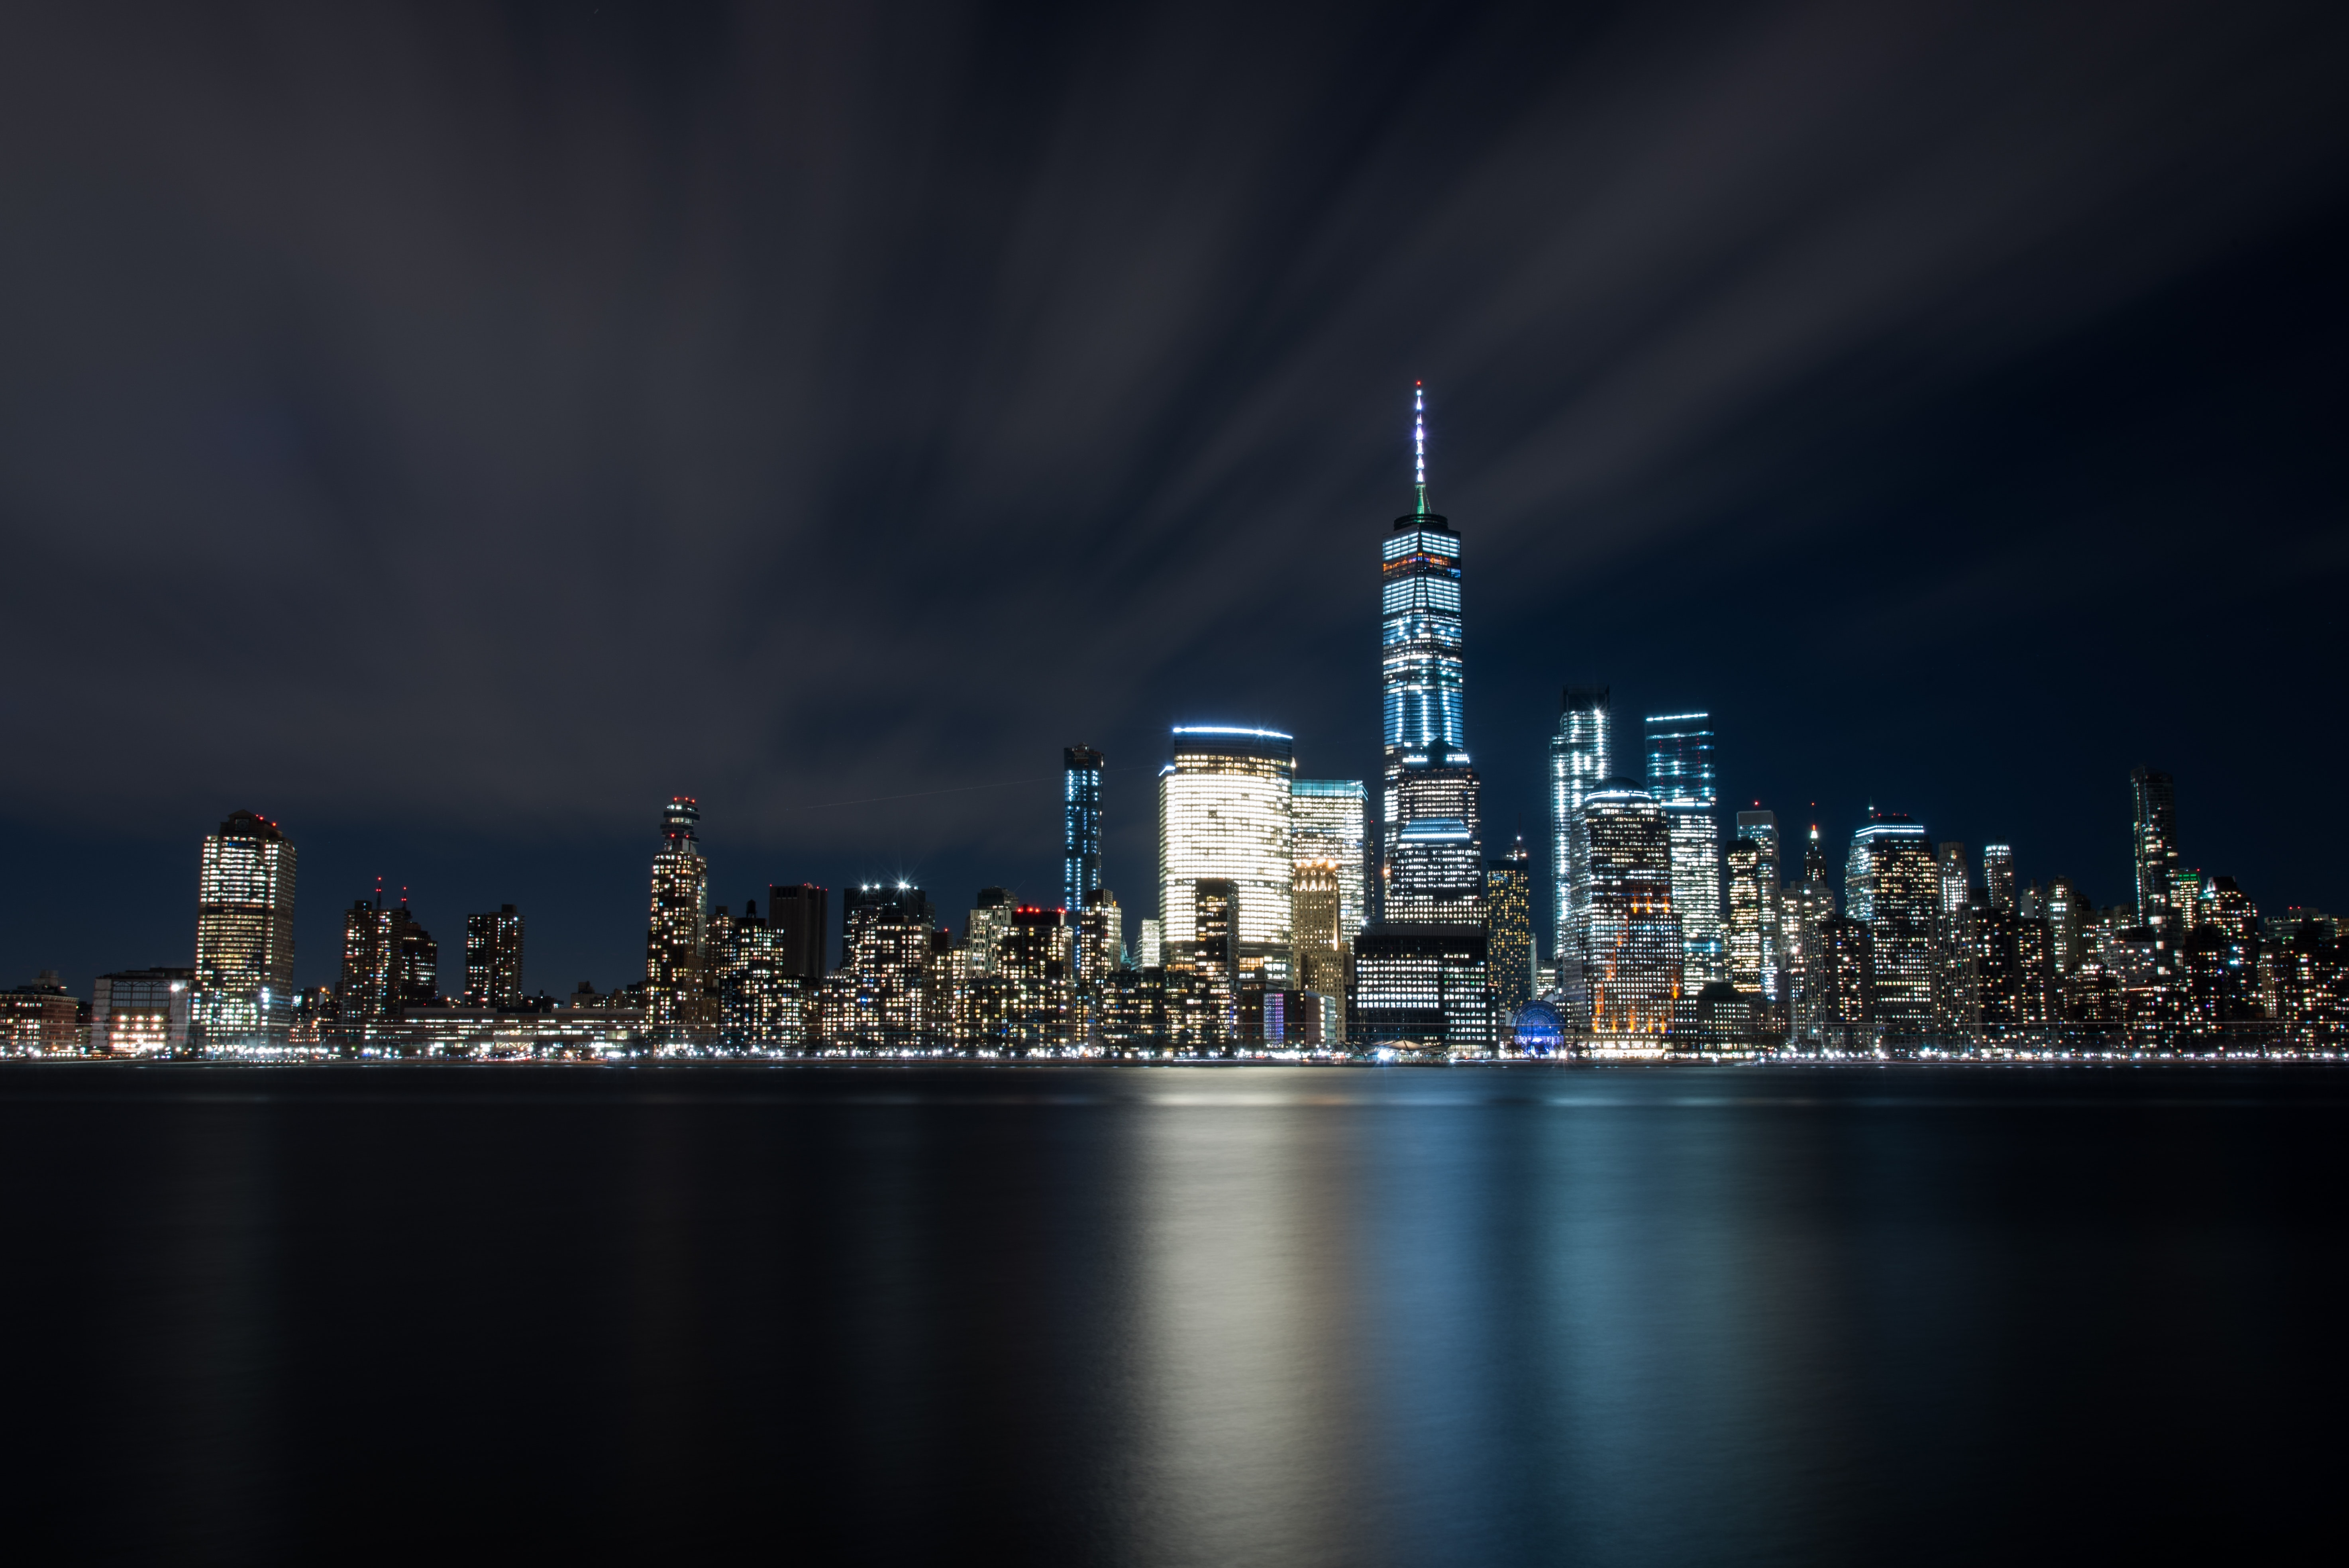 High-rise Buildings at Night Near Sea, Nyc, Waterfront, Water, Urban, HQ Photo